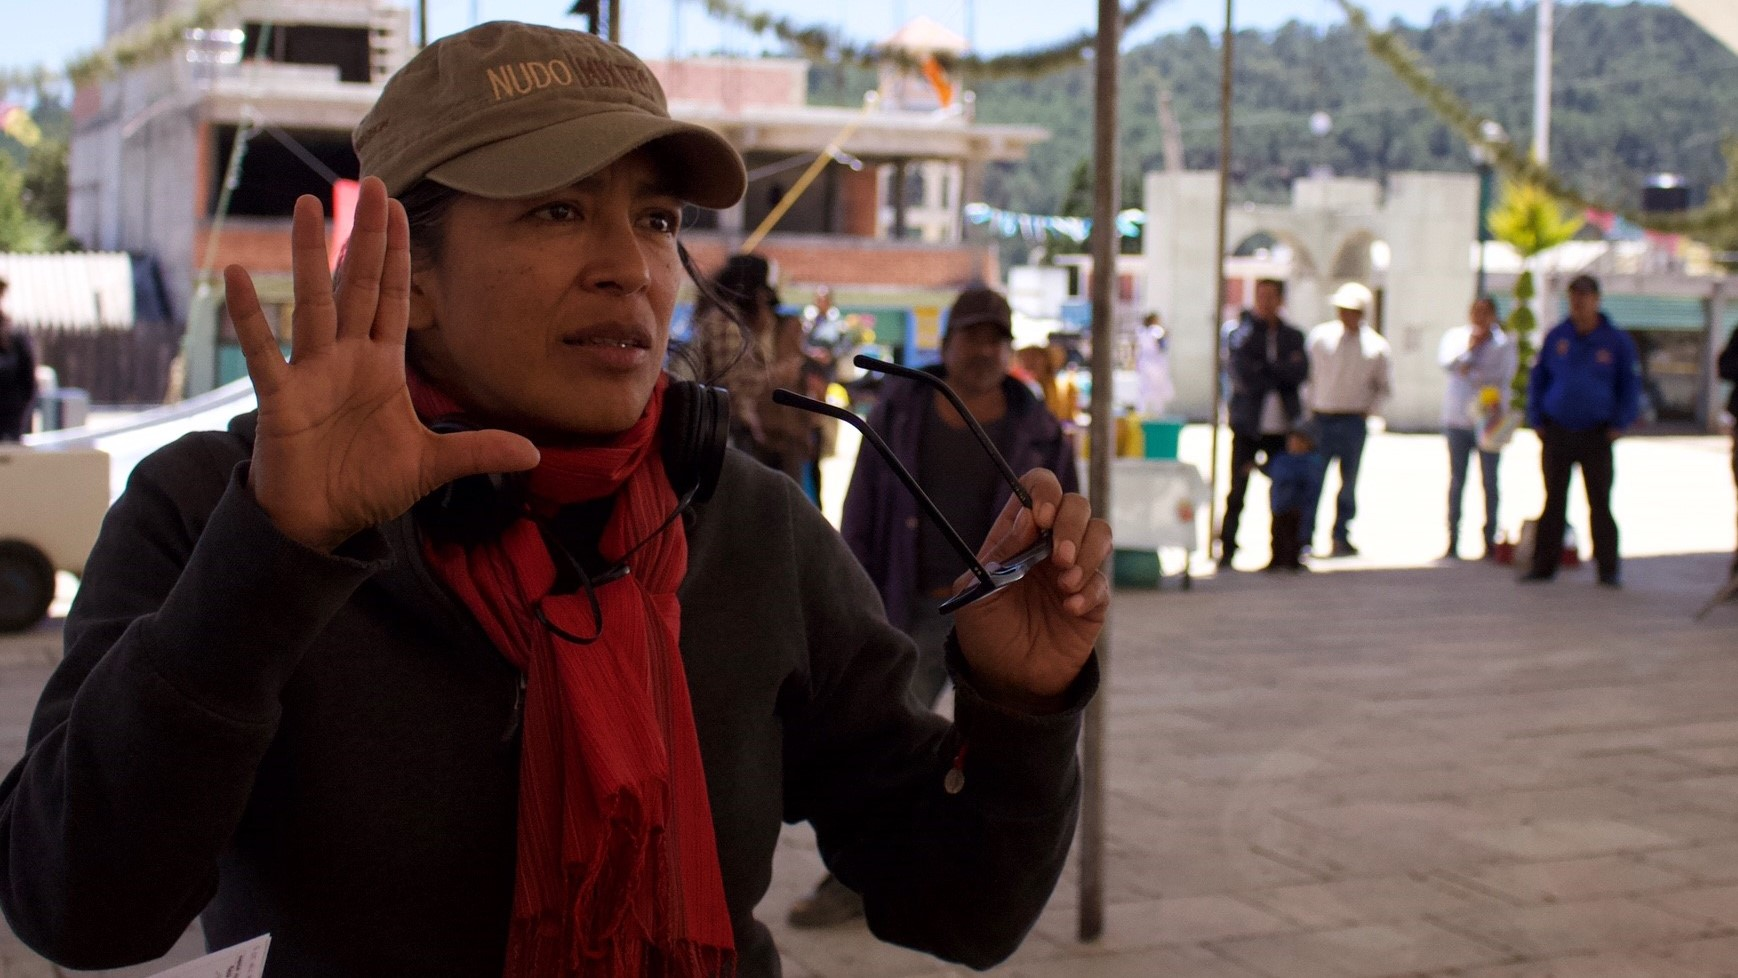 'nudo-mixteco'-director-angeles-cruz-on-migration,-poverty,-the-plight-of-women-and-her-next-project-(exclusive)